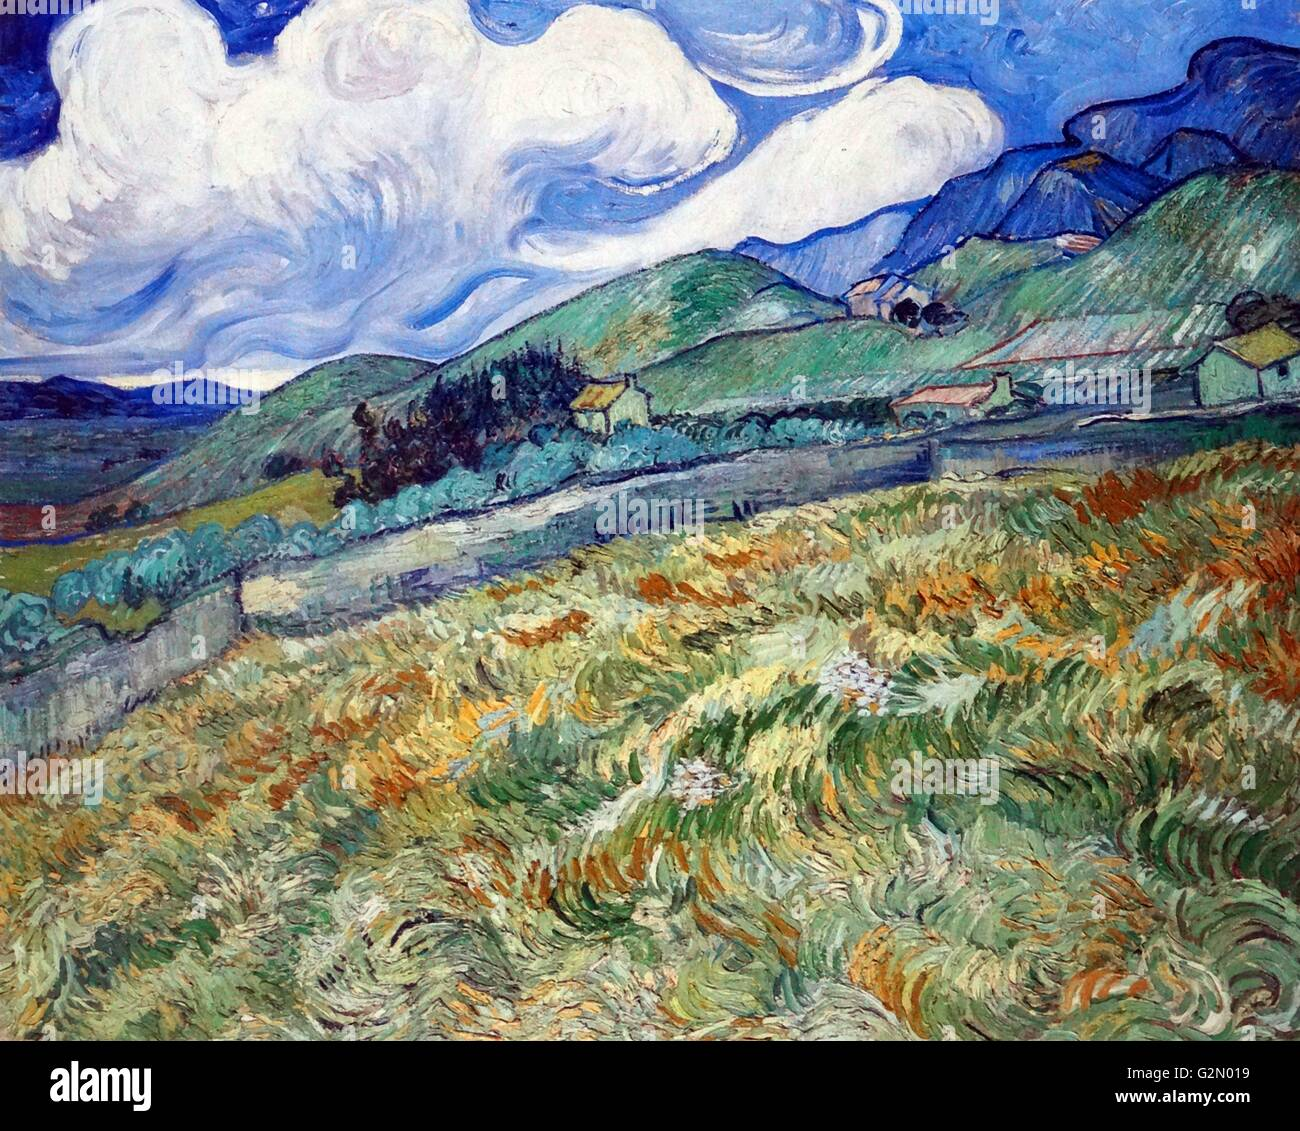 Vincent Van Gogh 'Wheat field with mountains in the background'. - Stock Image